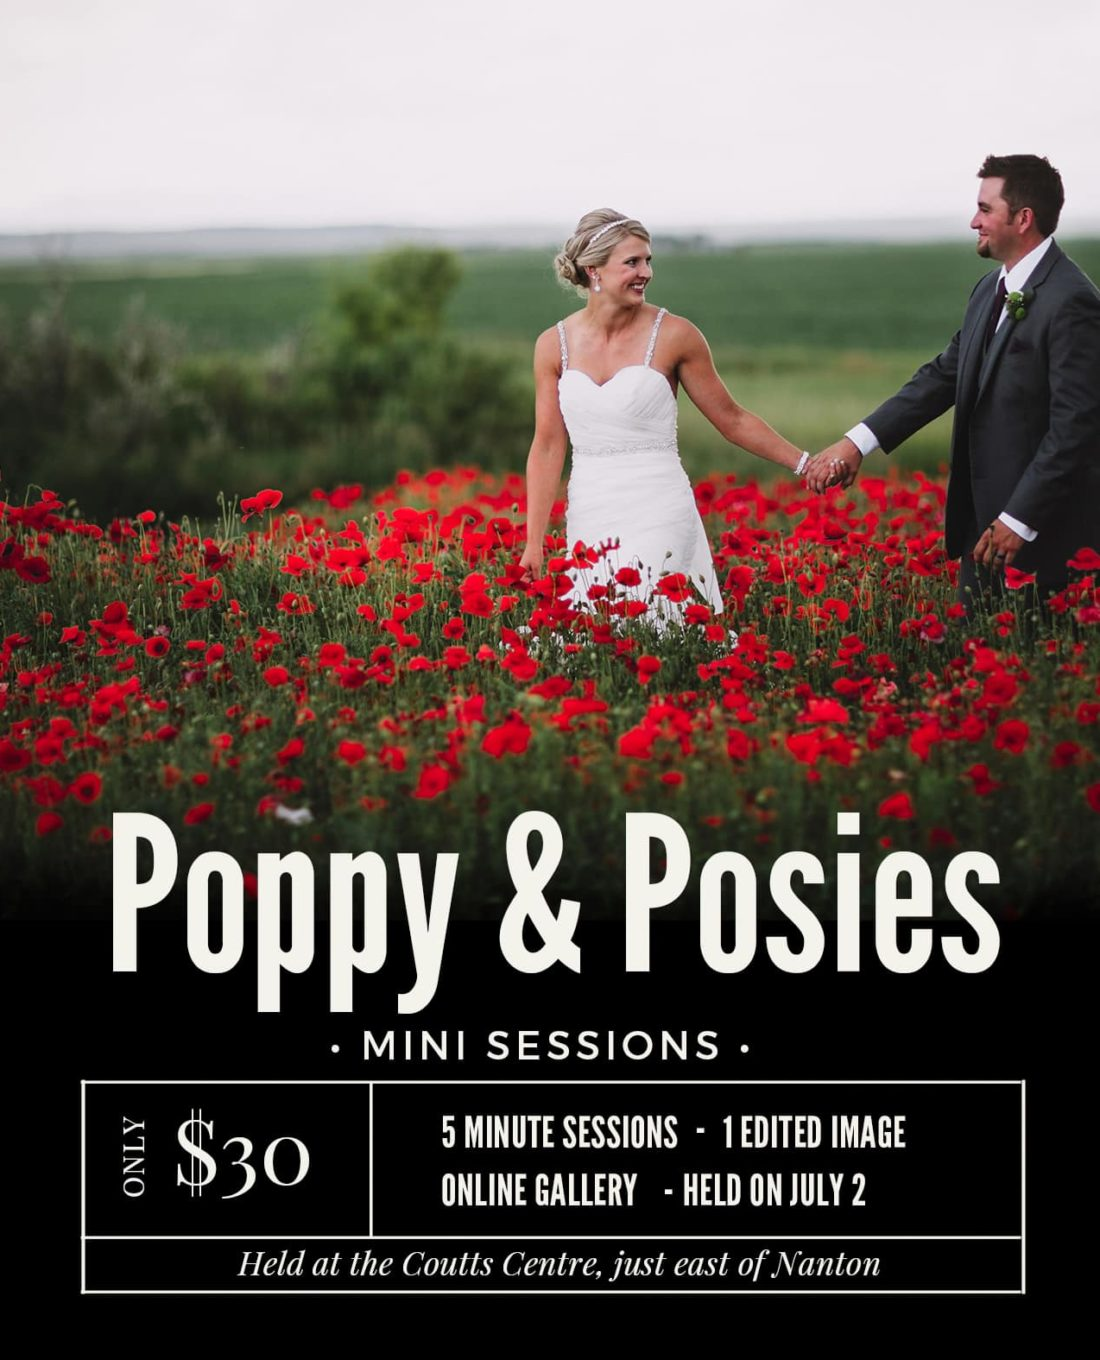 Poppy and Posies Mini Sessions